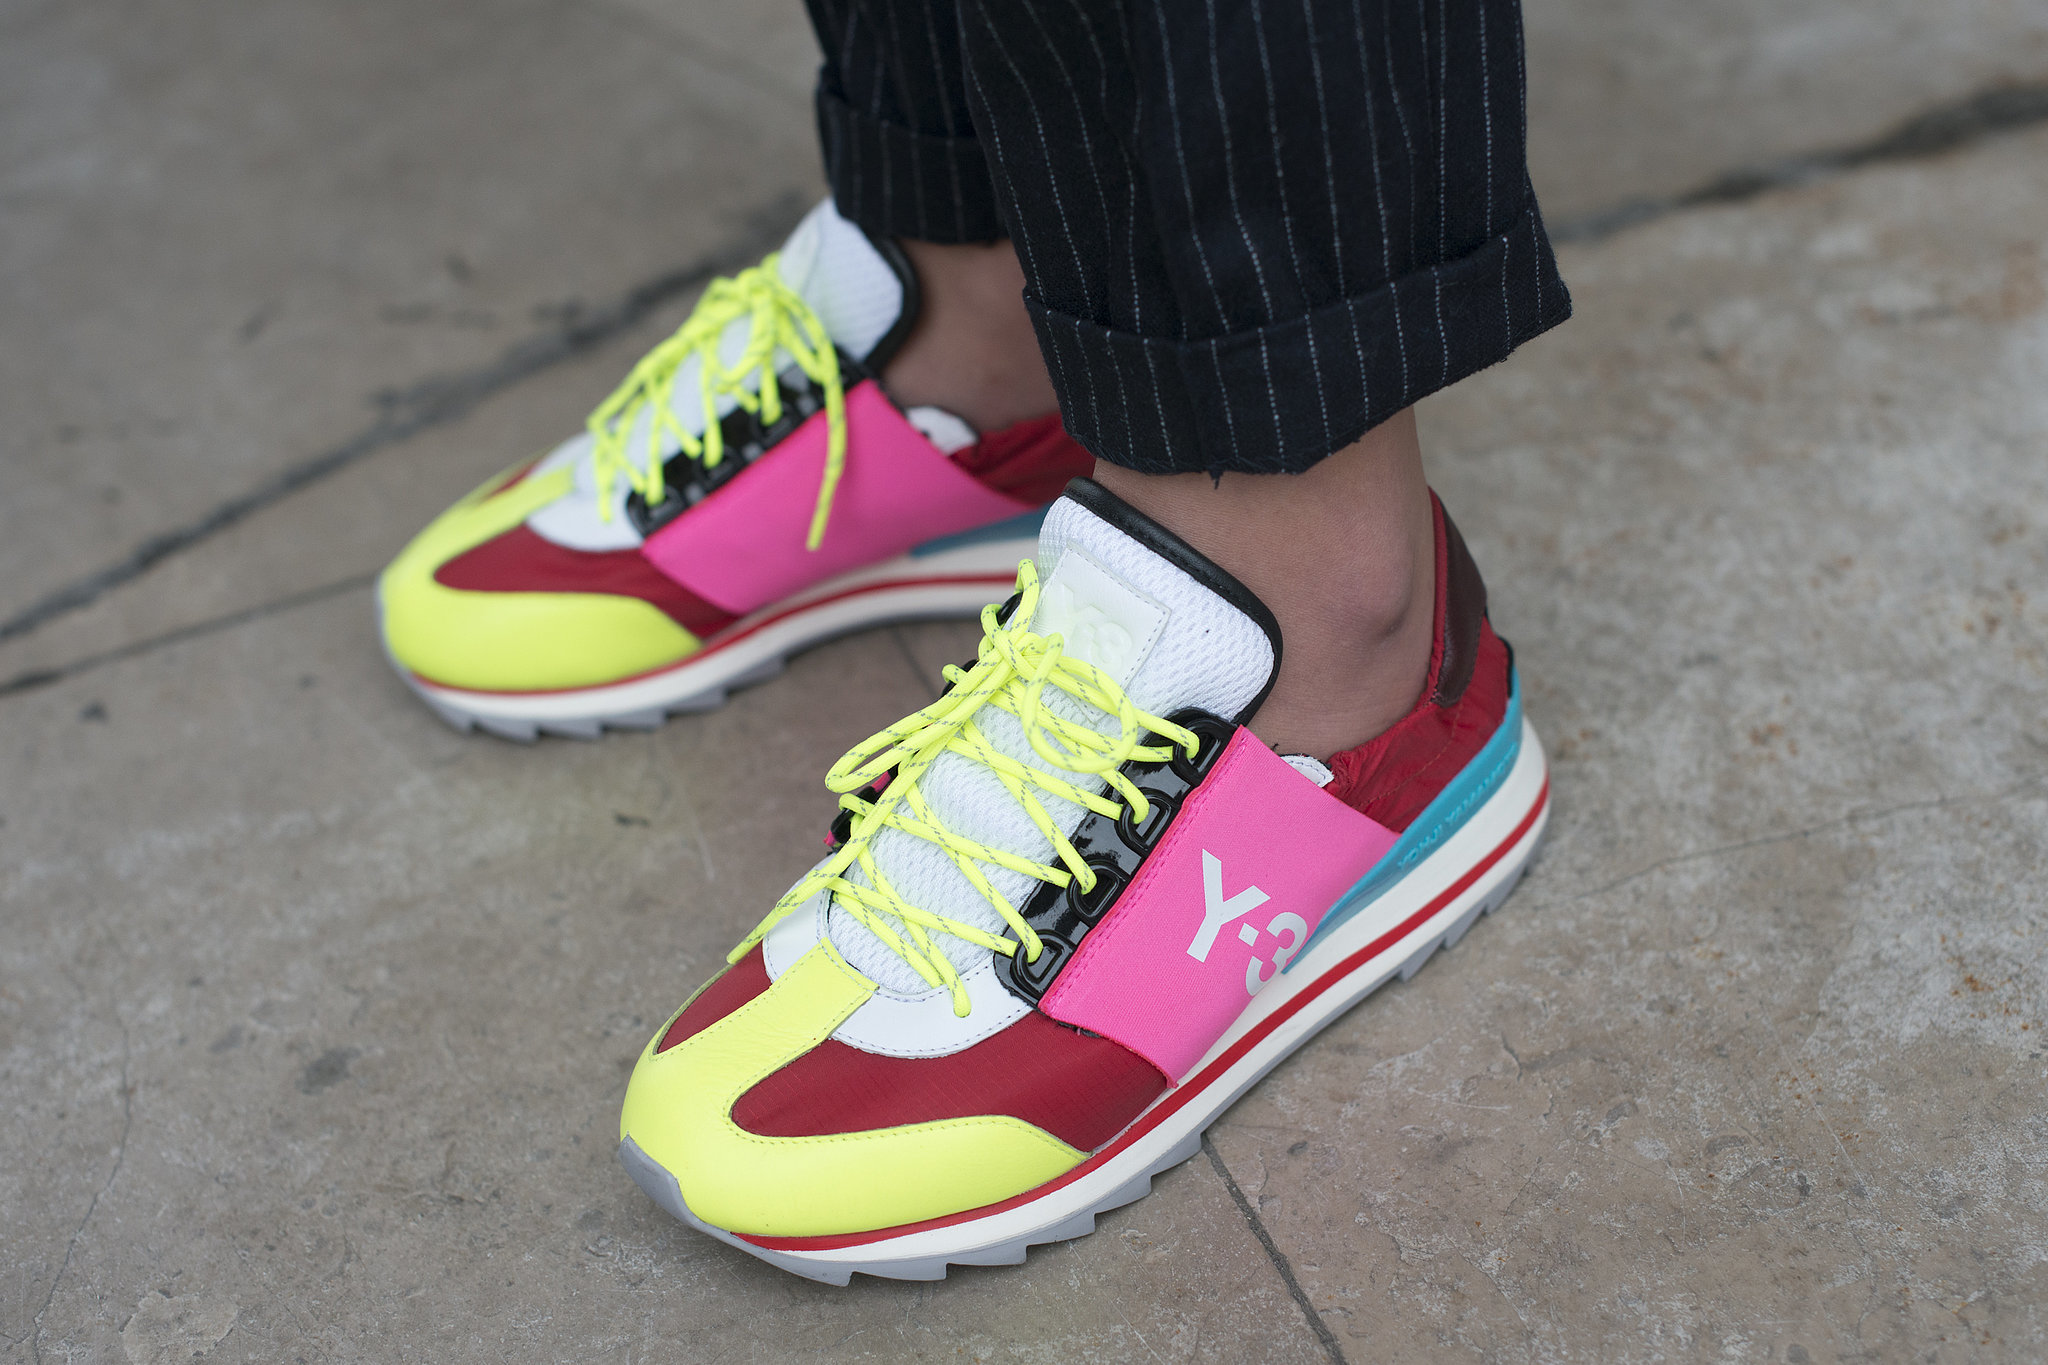 Rainbow-colored kicks up the cool factor on any outfit.